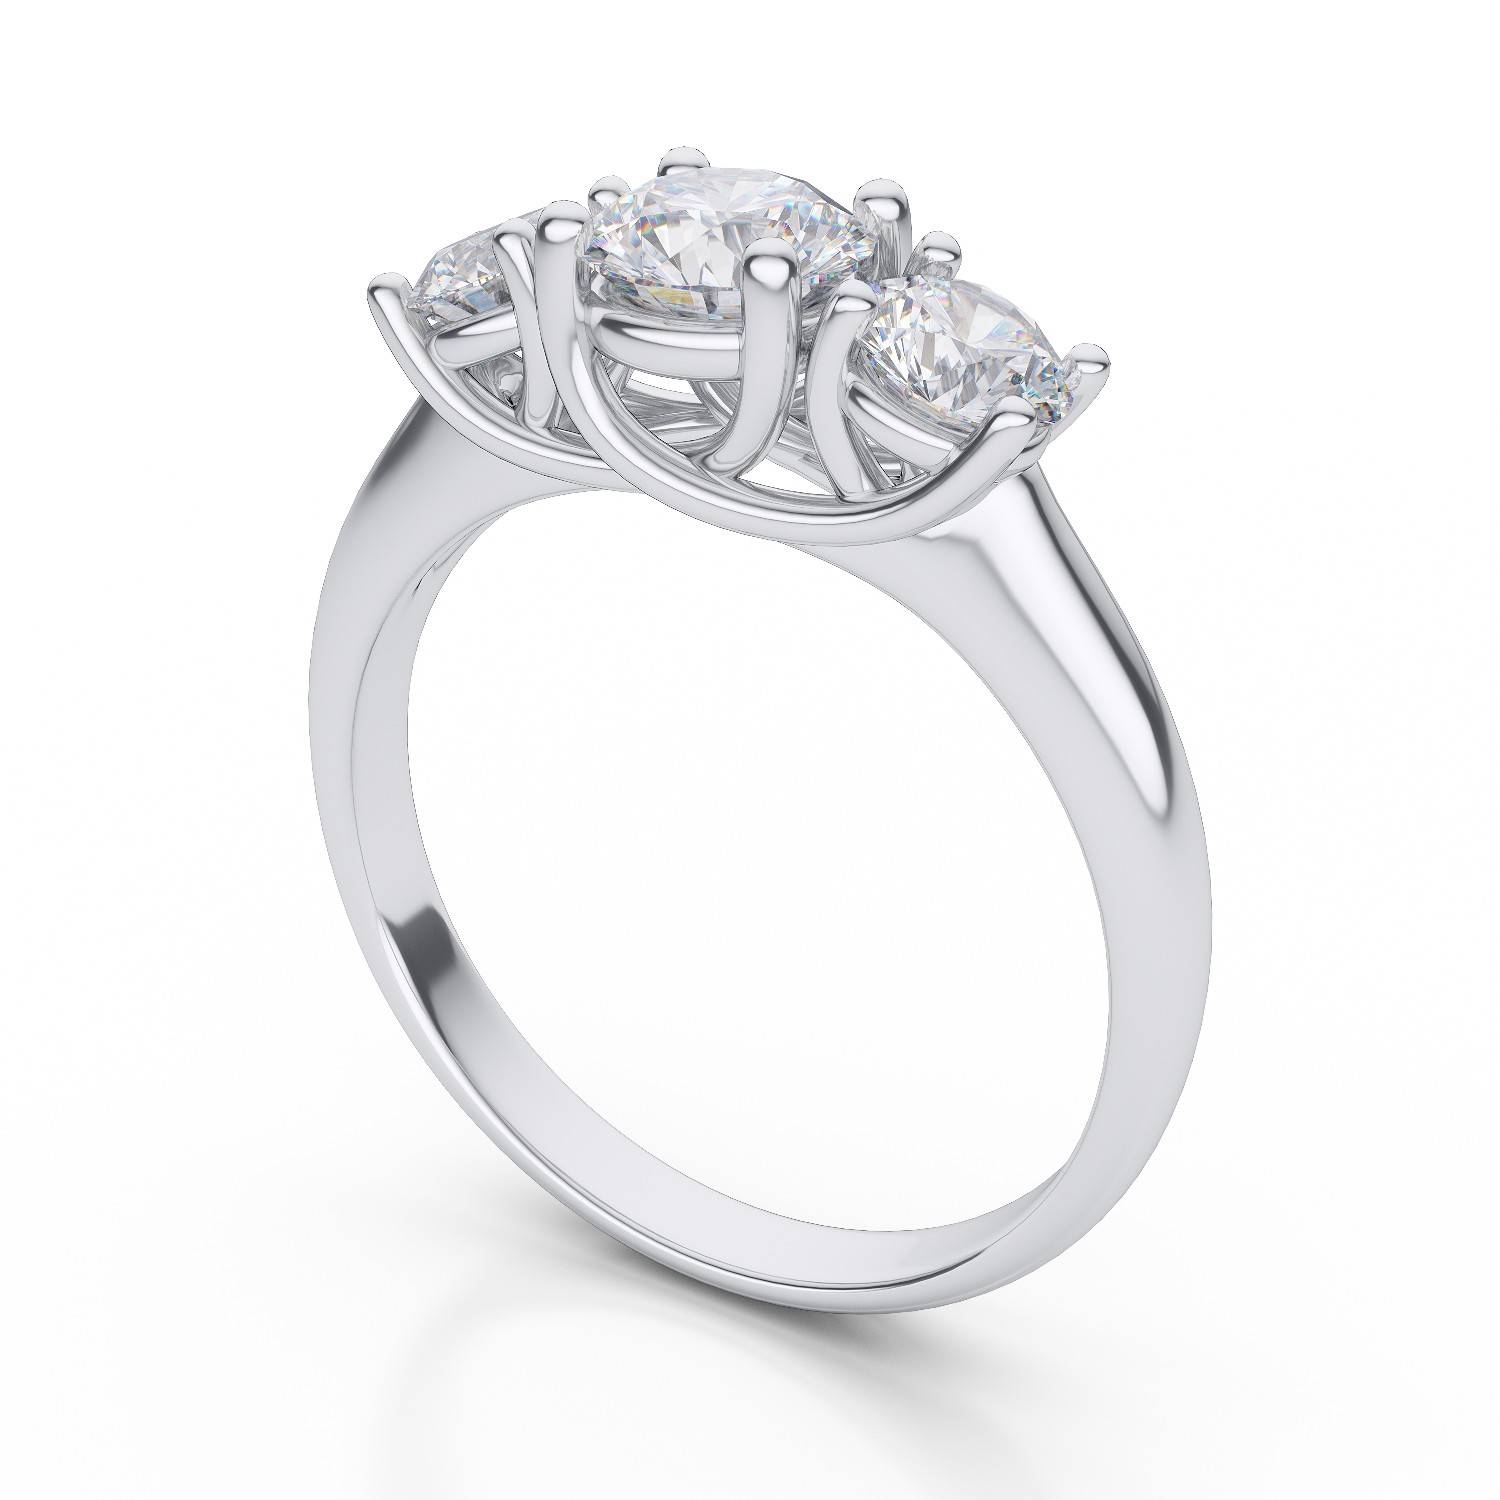 3 Stone Diamond Rings Platinum | Wedding, Promise, Diamond For Current Three Diamond Anniversary Rings (View 4 of 25)